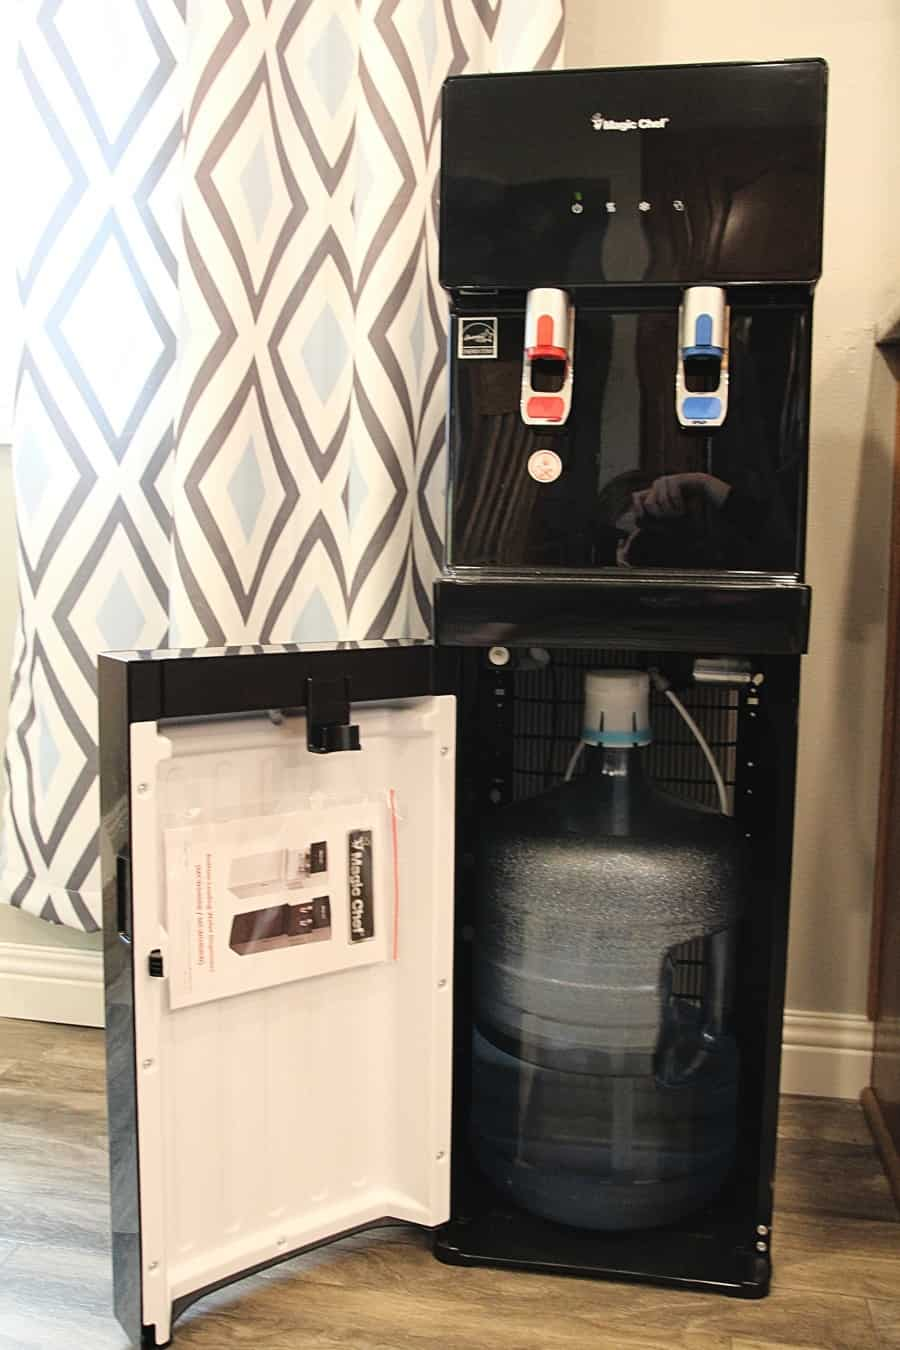 11 Simple Hacks To Help You Drink More Water {+ NewAir Water Dispenser Review}